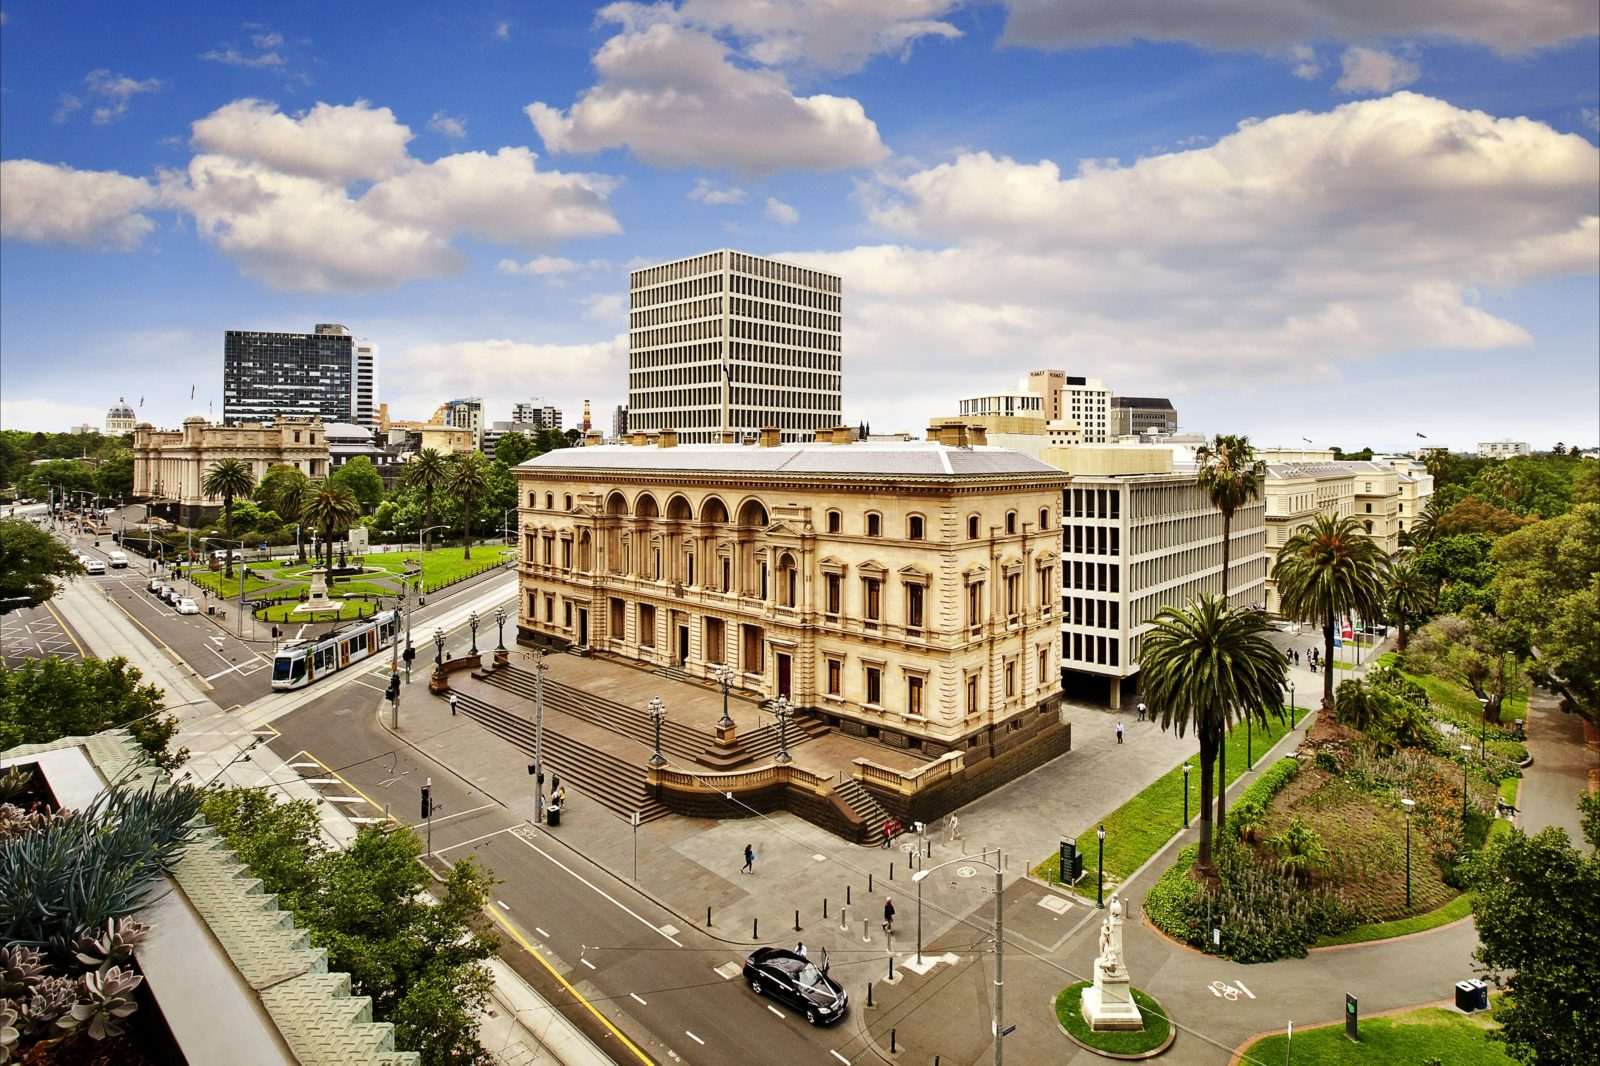 The Old Treasury Building during the day